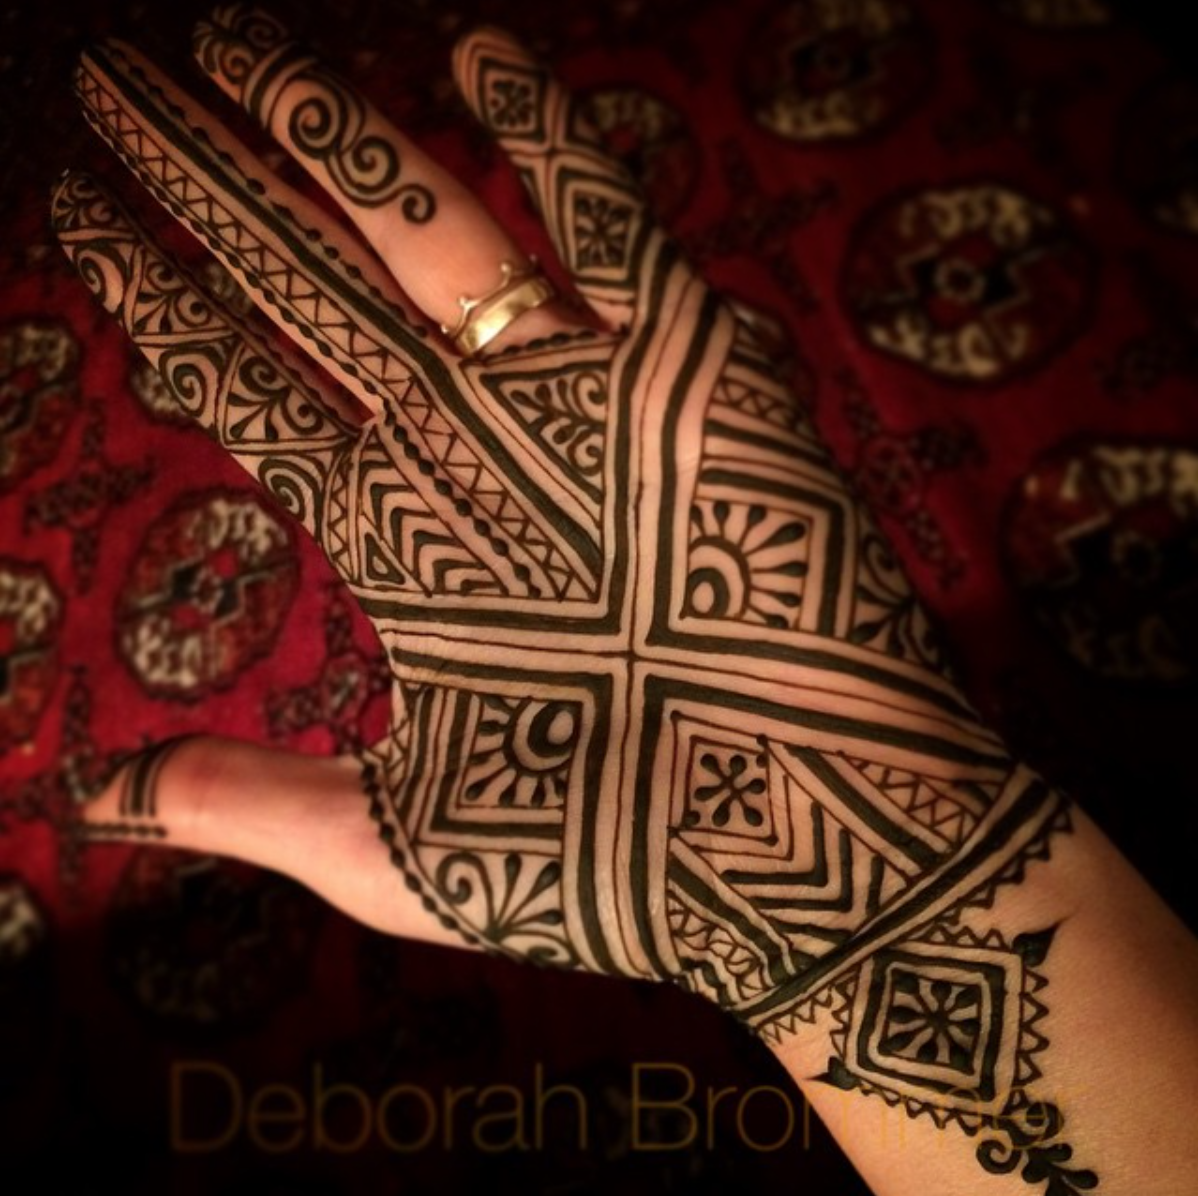 A henna design on the palm of a hand that was inspired by the traditional Moroccan Fezi style of henna.